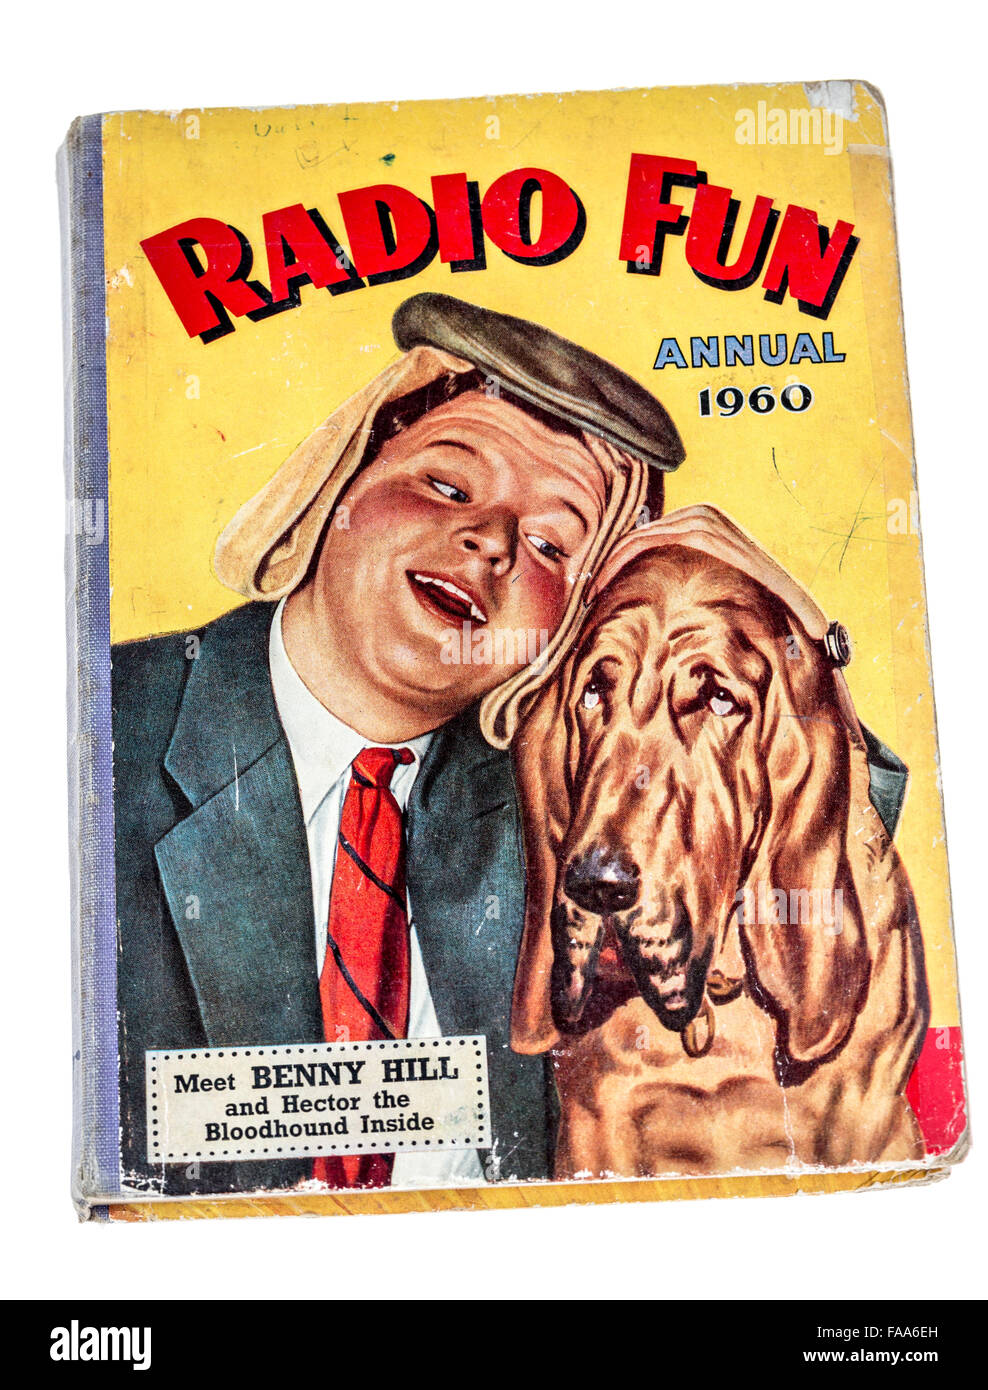 Radio Fun annual 1960 book cover featuring Benny Hill - Stock Image